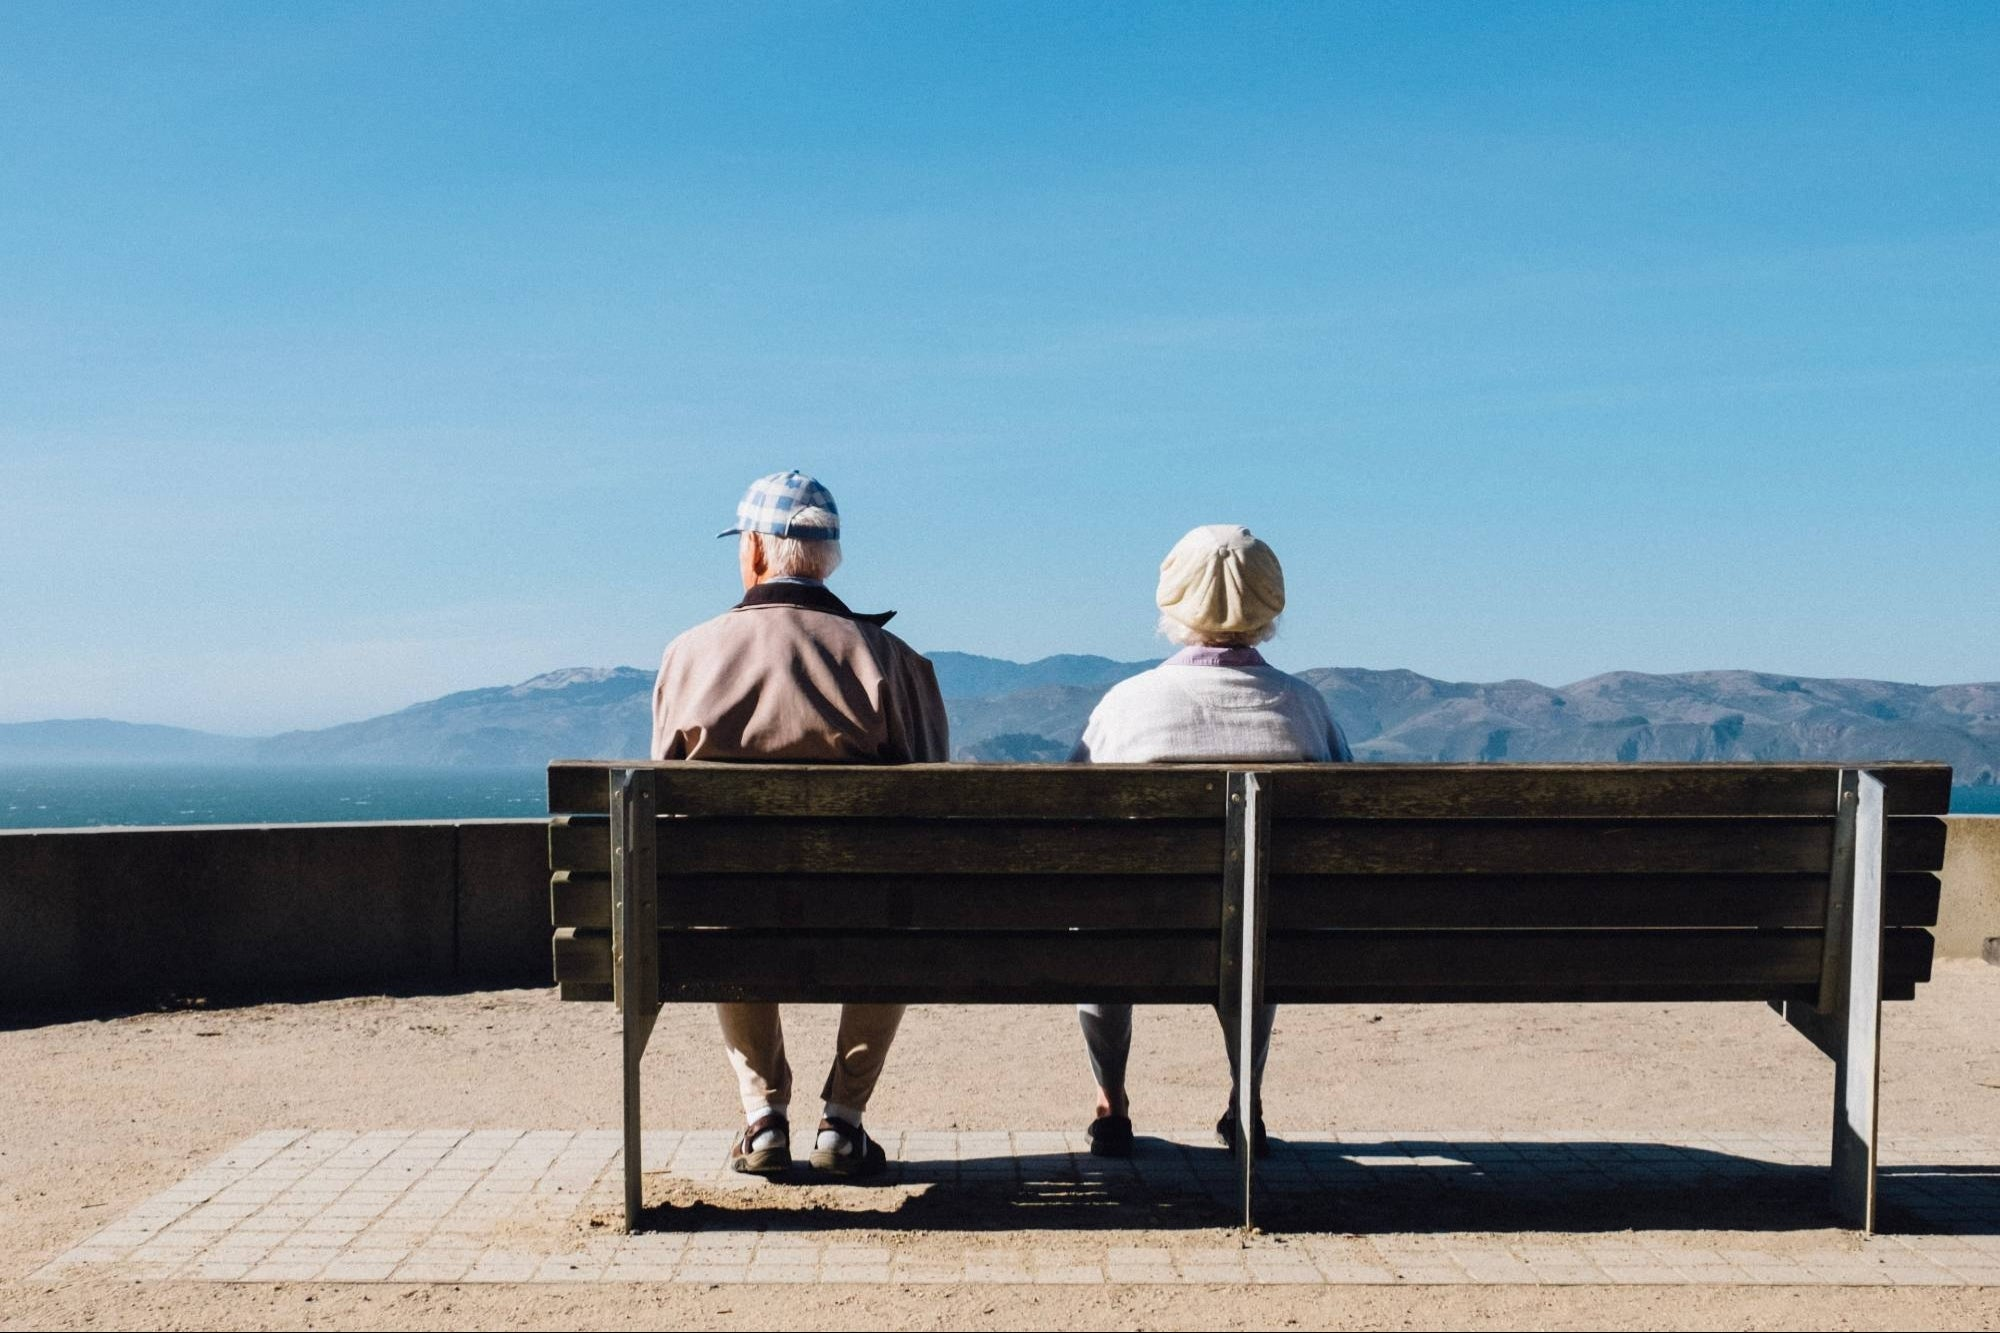 Can you imagine living to be 124 years old? This could be the maximum life expectancy for the year 2,100: according to study